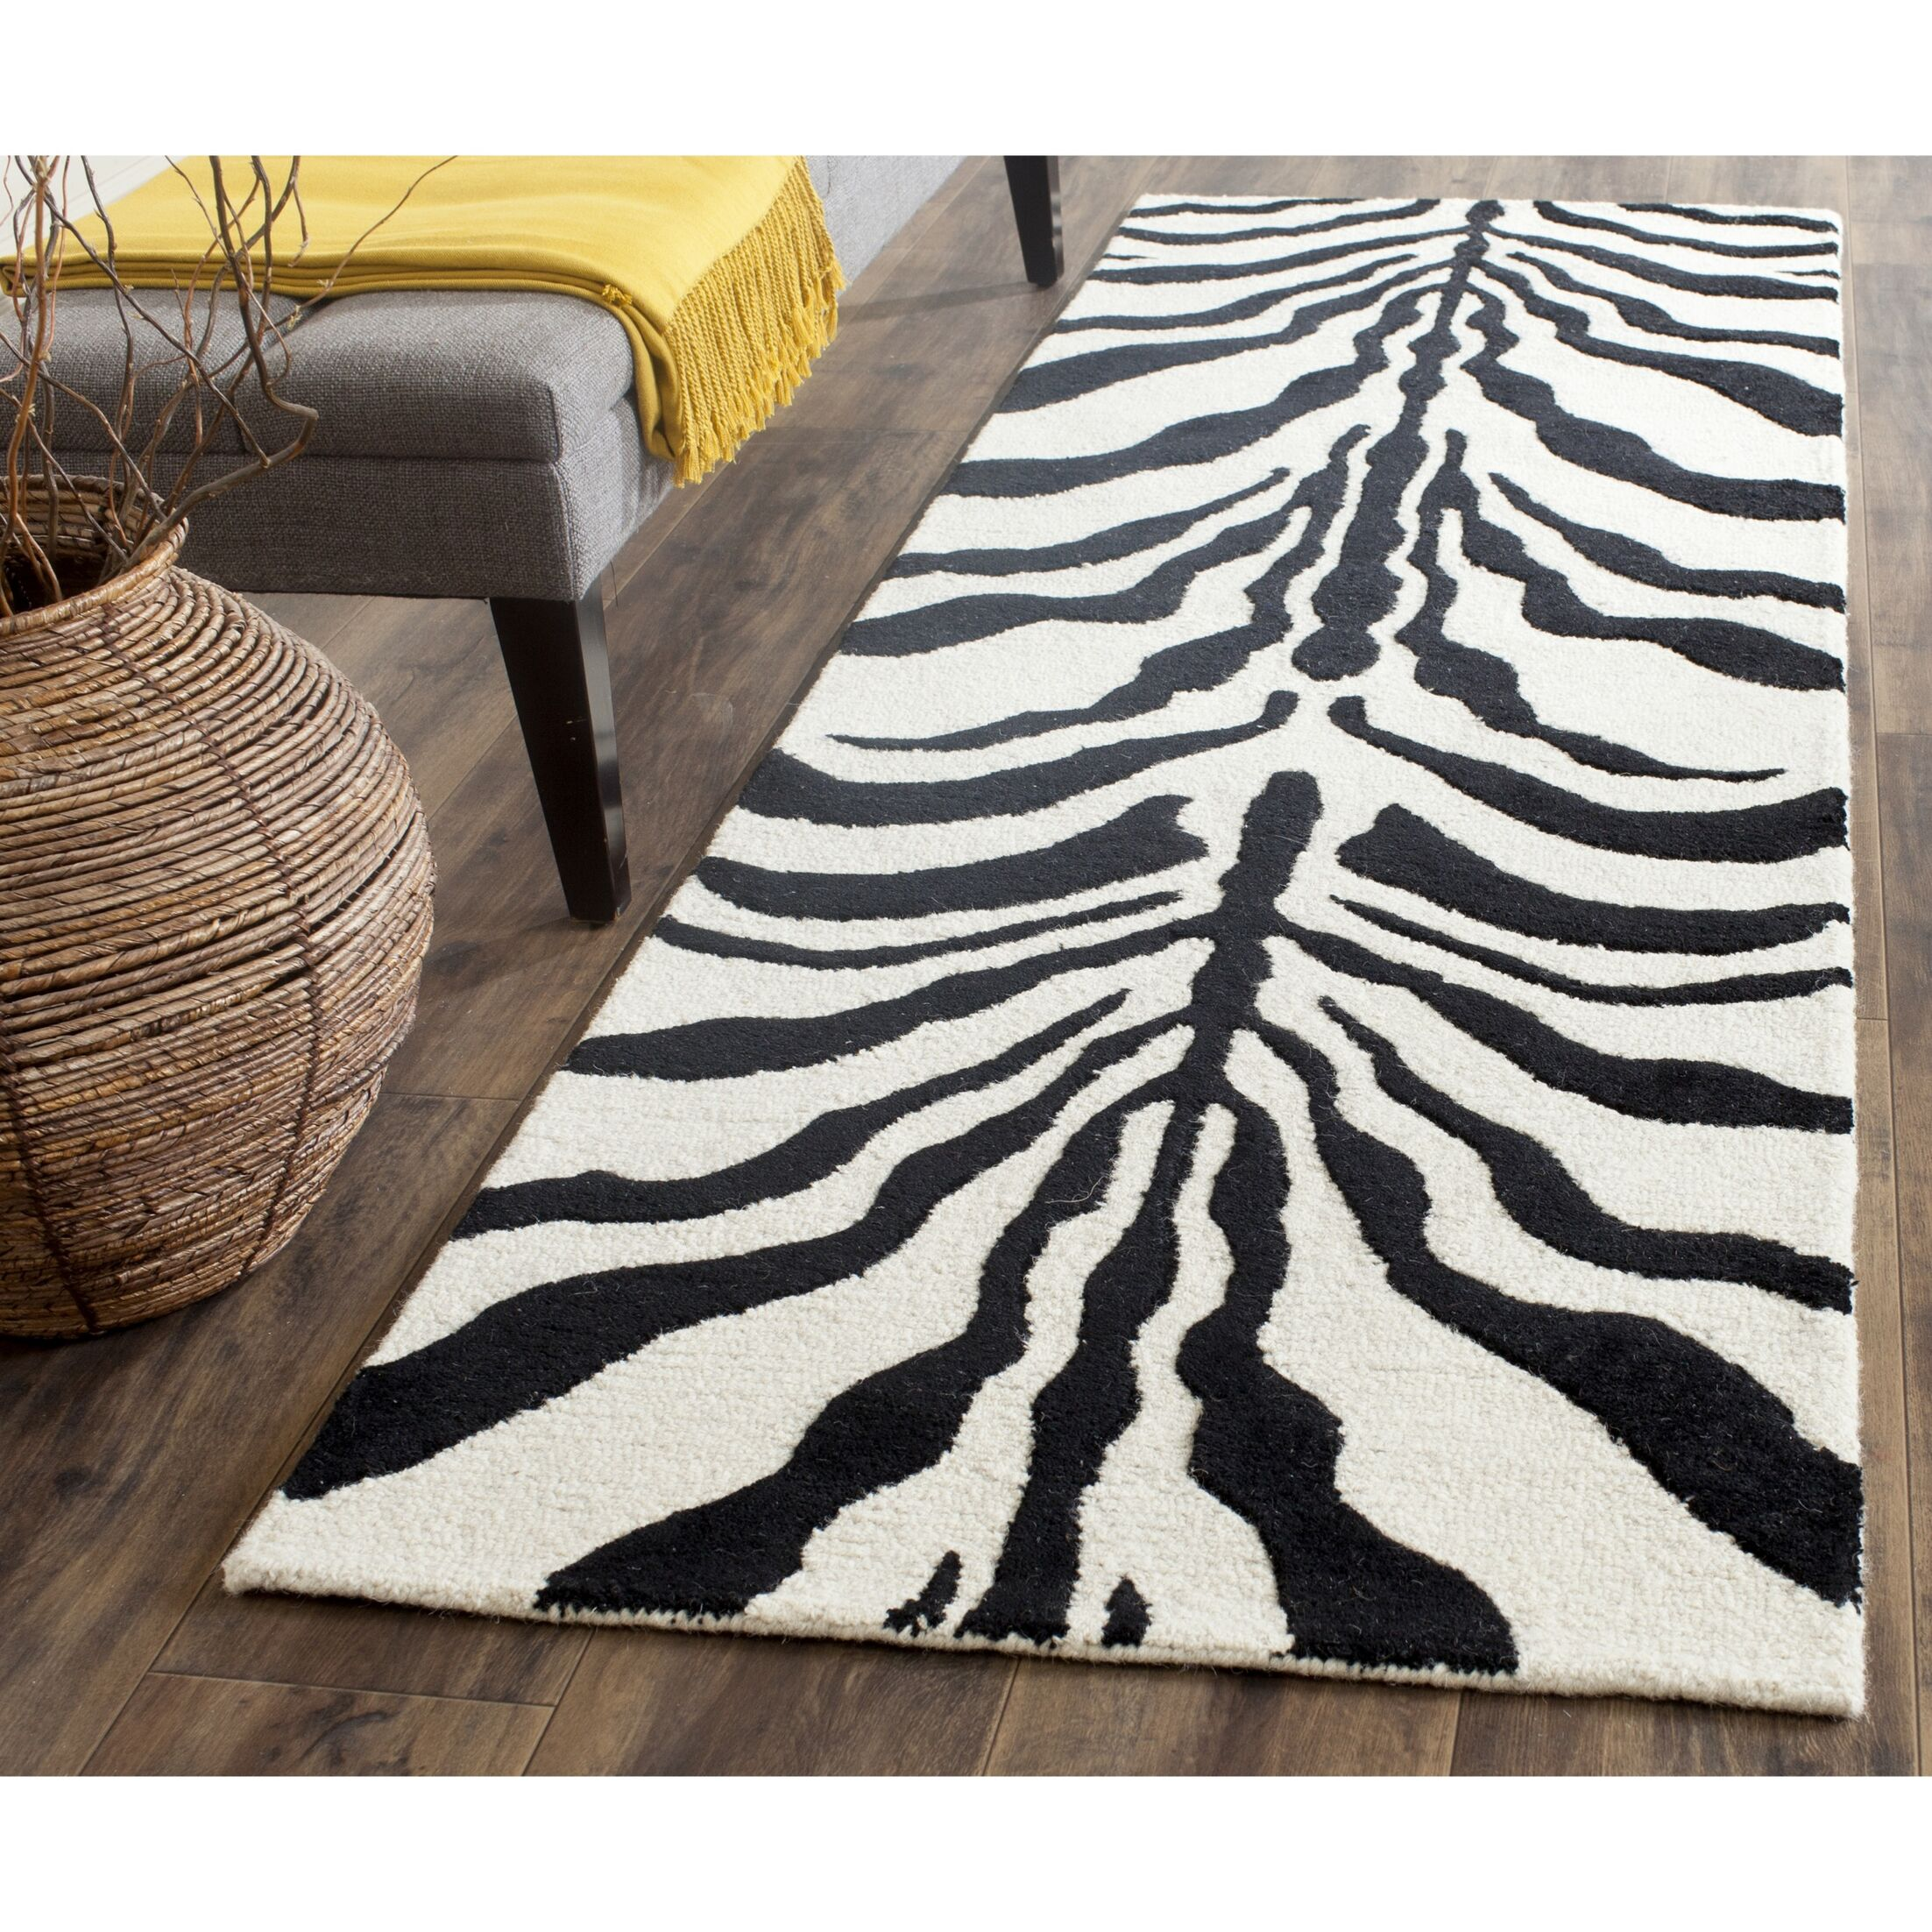 Roloff Hand-Tufted Wool Ivory/Black Area Rug Rug Size: Runner 2'6